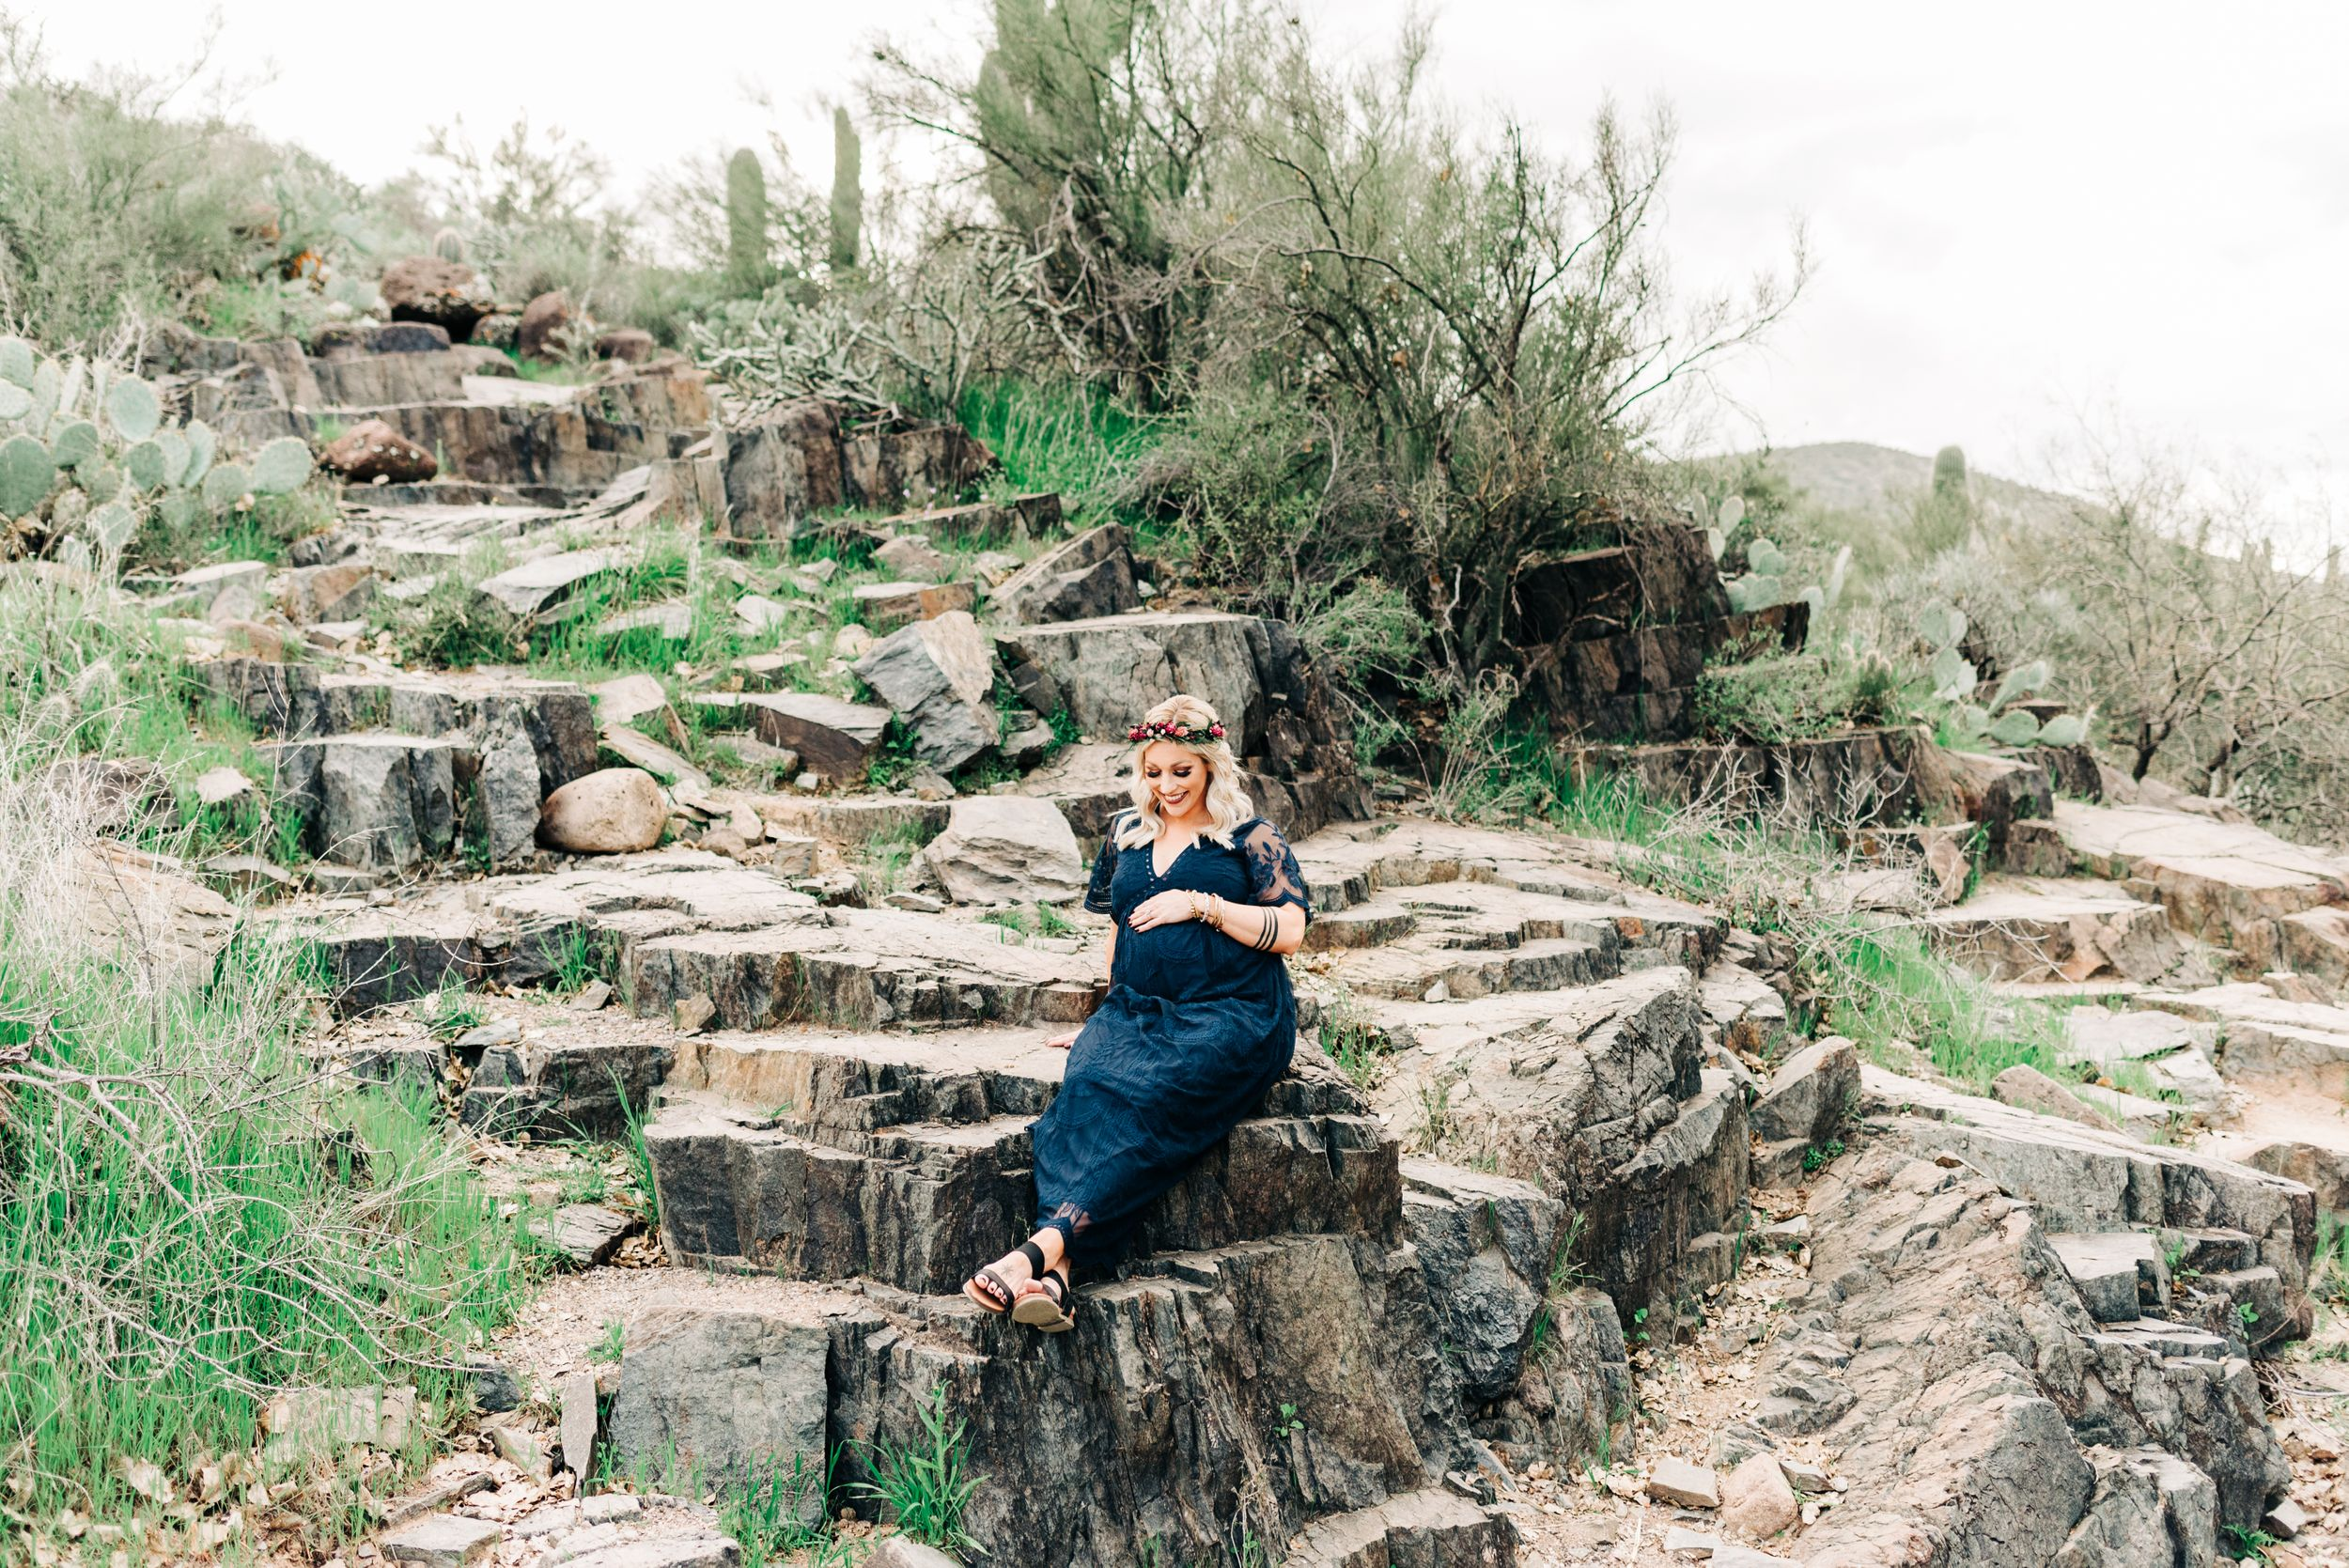 Sitting pose during maternity session in Phoenix, AZ